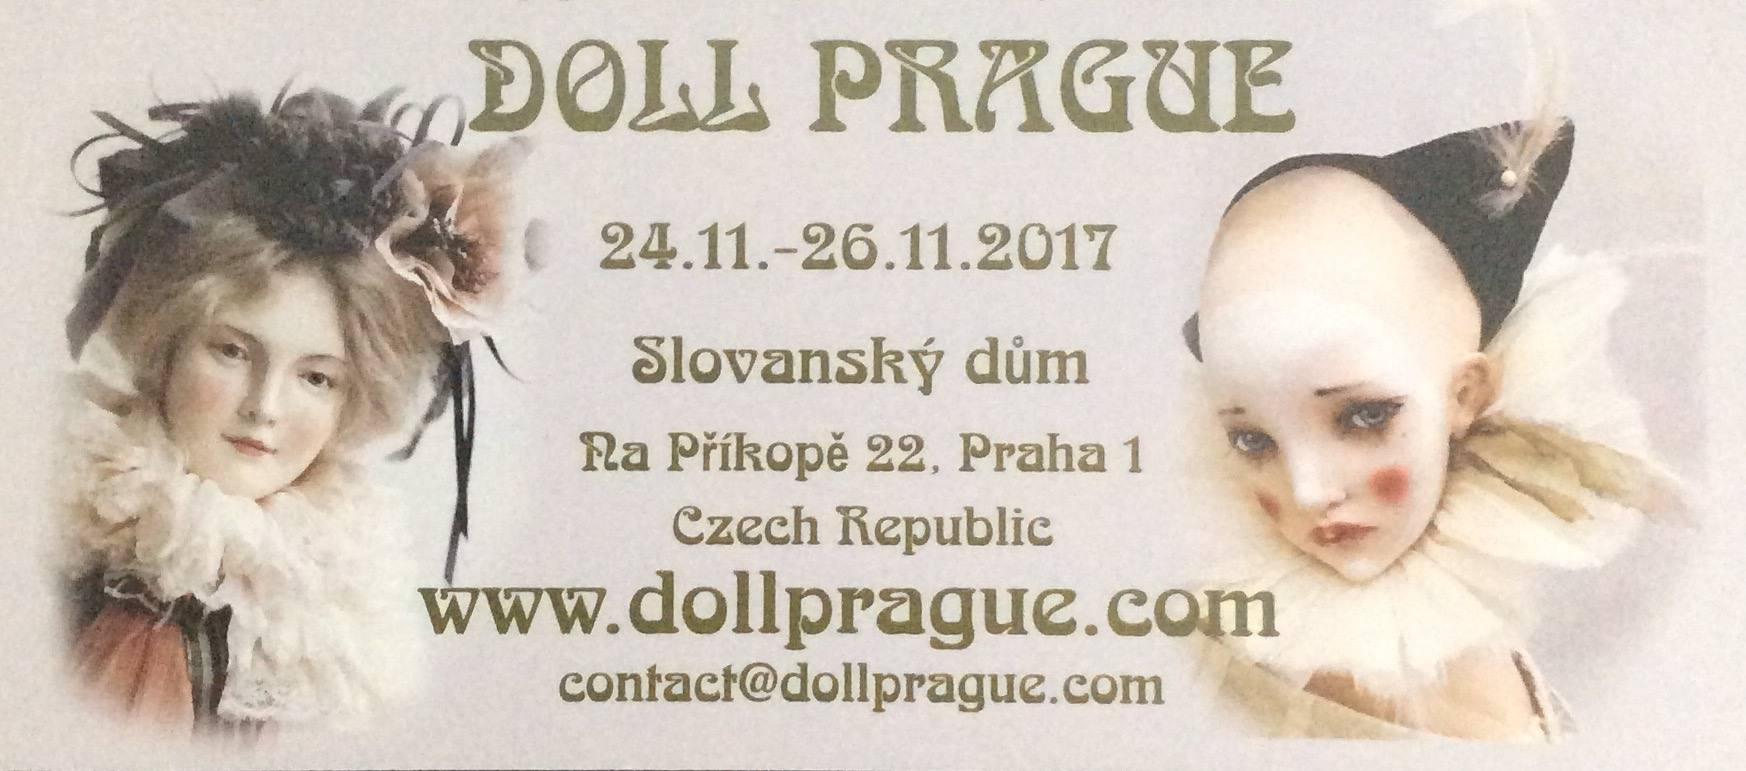 dollprague2017